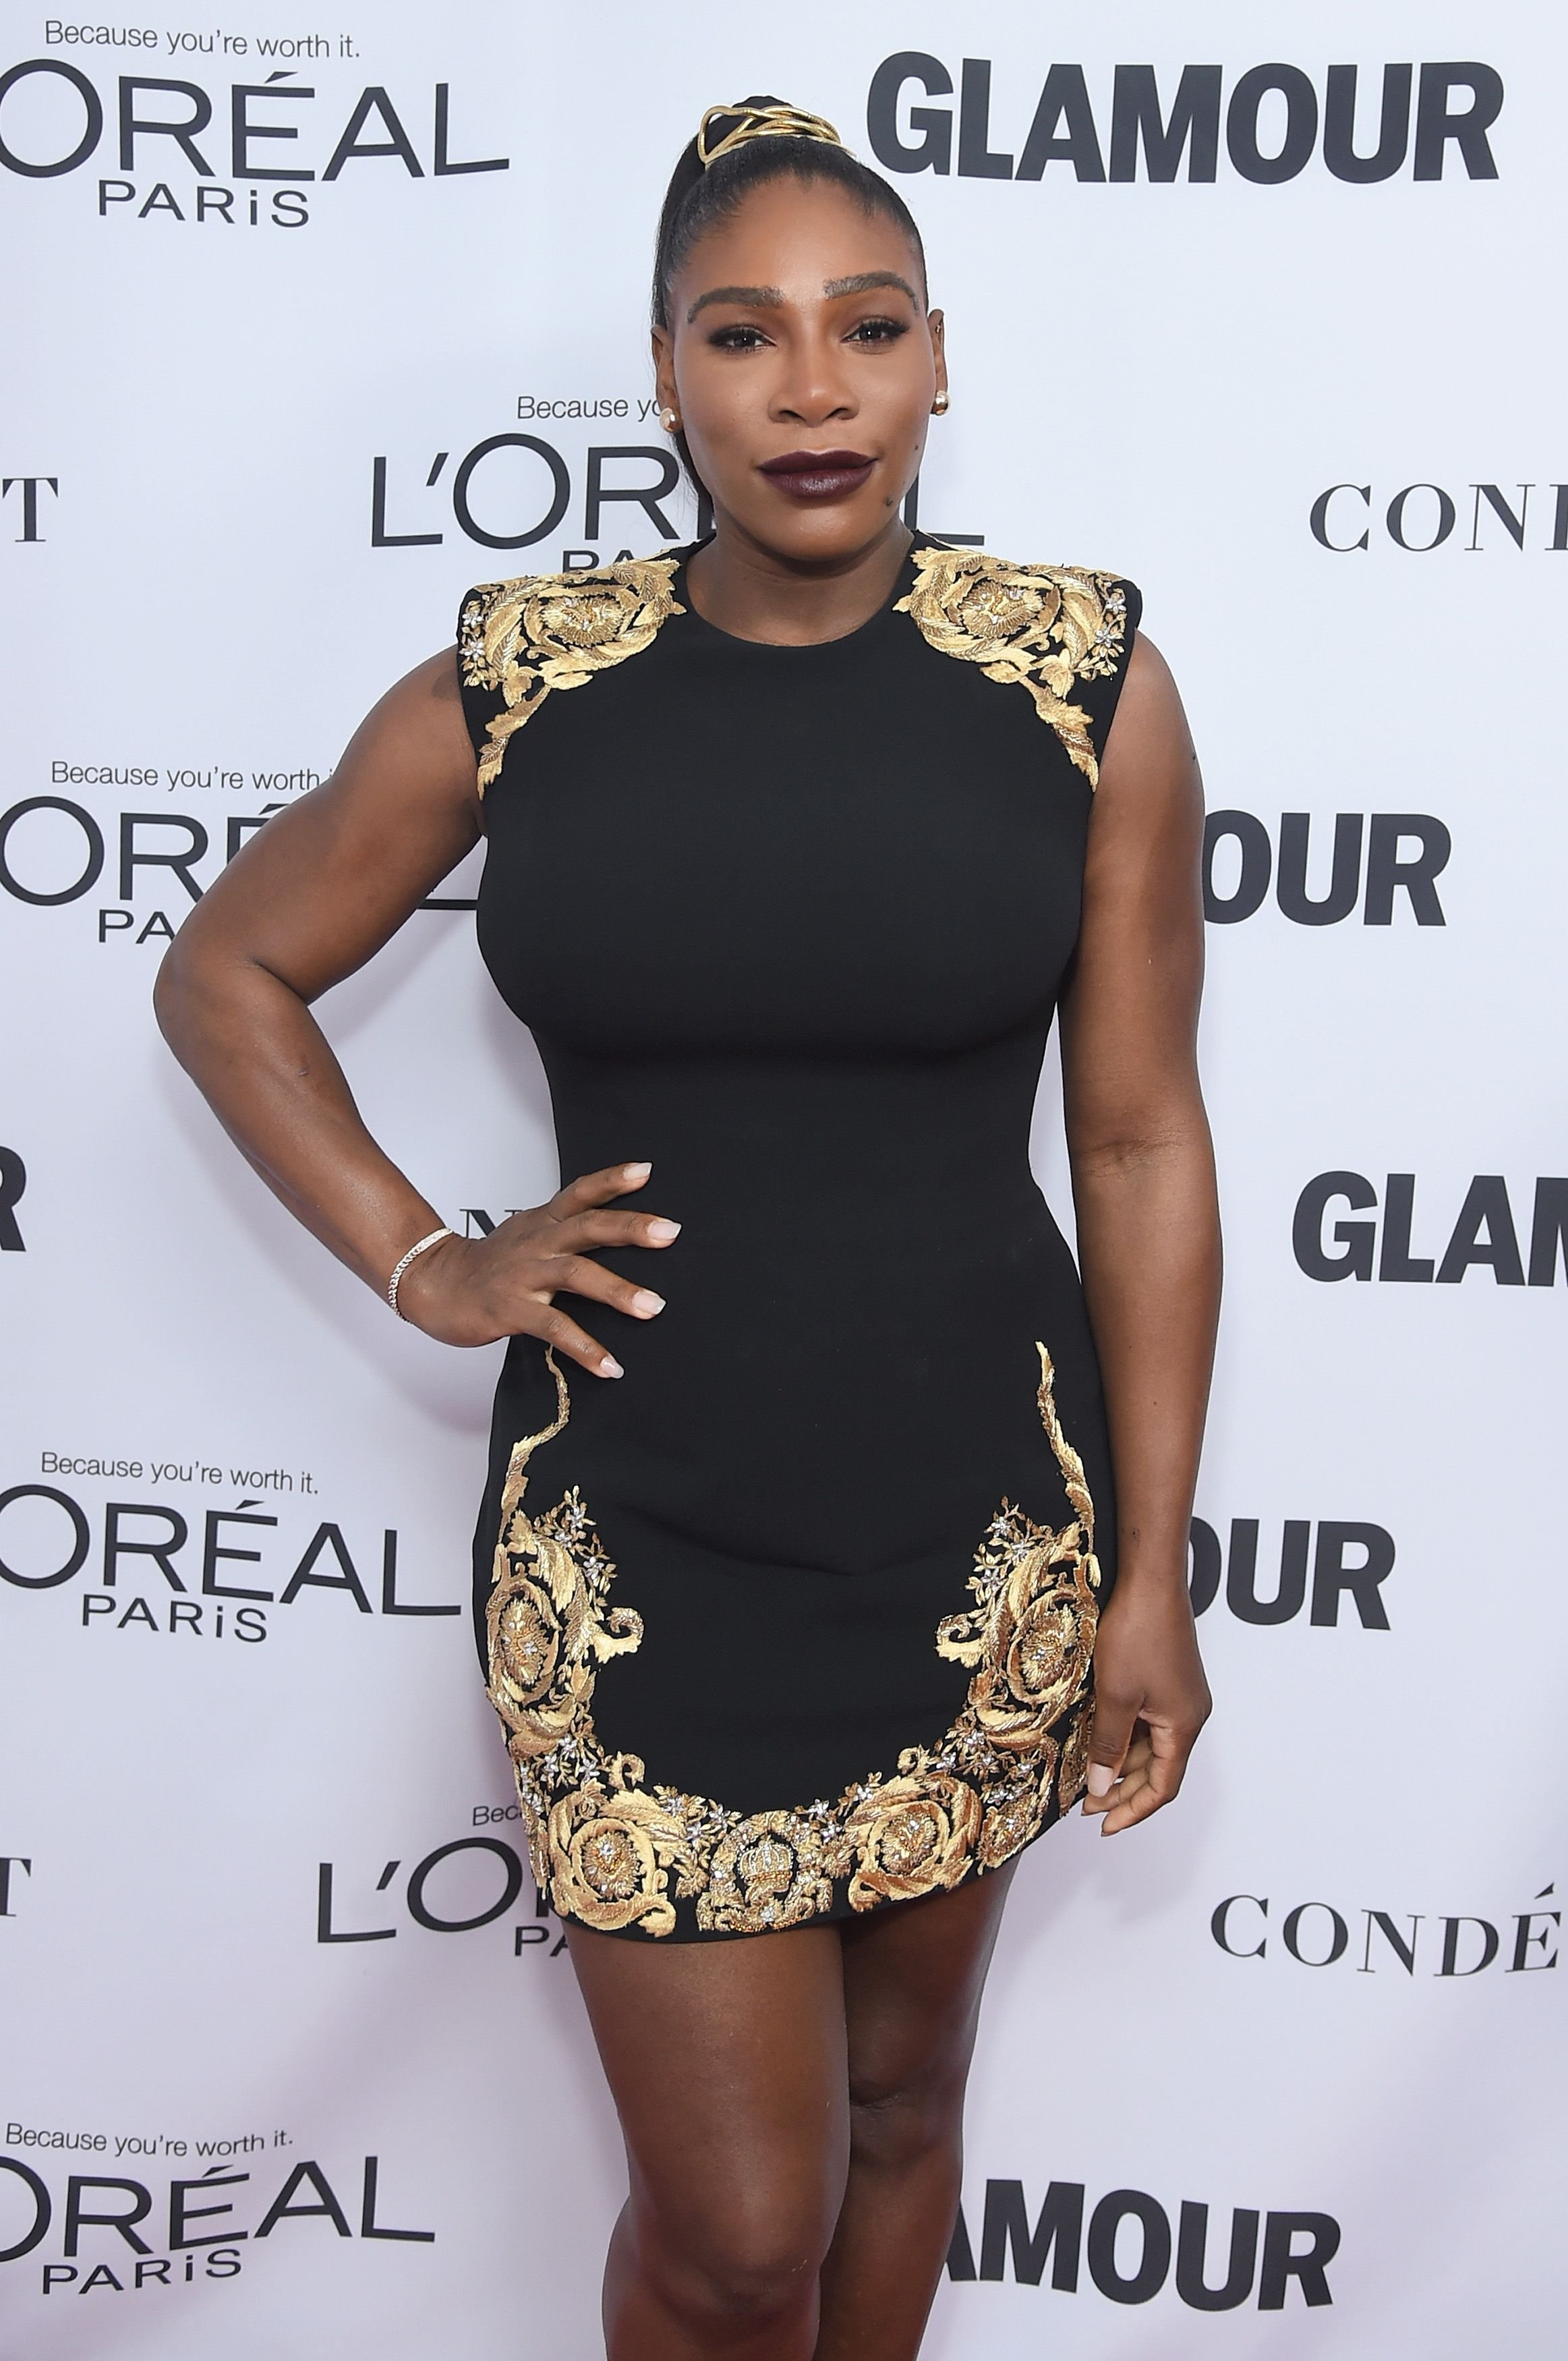 Serena Williams at the Glamour's Women of The Year Awards at Kings Theatre on November 13, 2017 in Brooklyn, New York | Photo: Getty Images